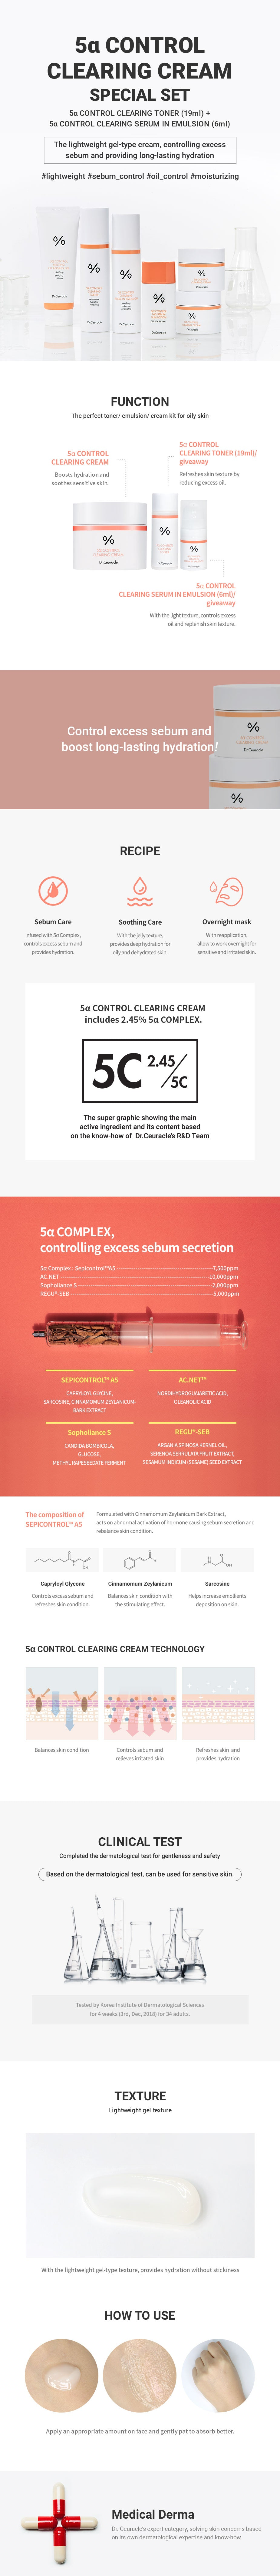 DR. CEURACLE 5a Control Clearing Cream